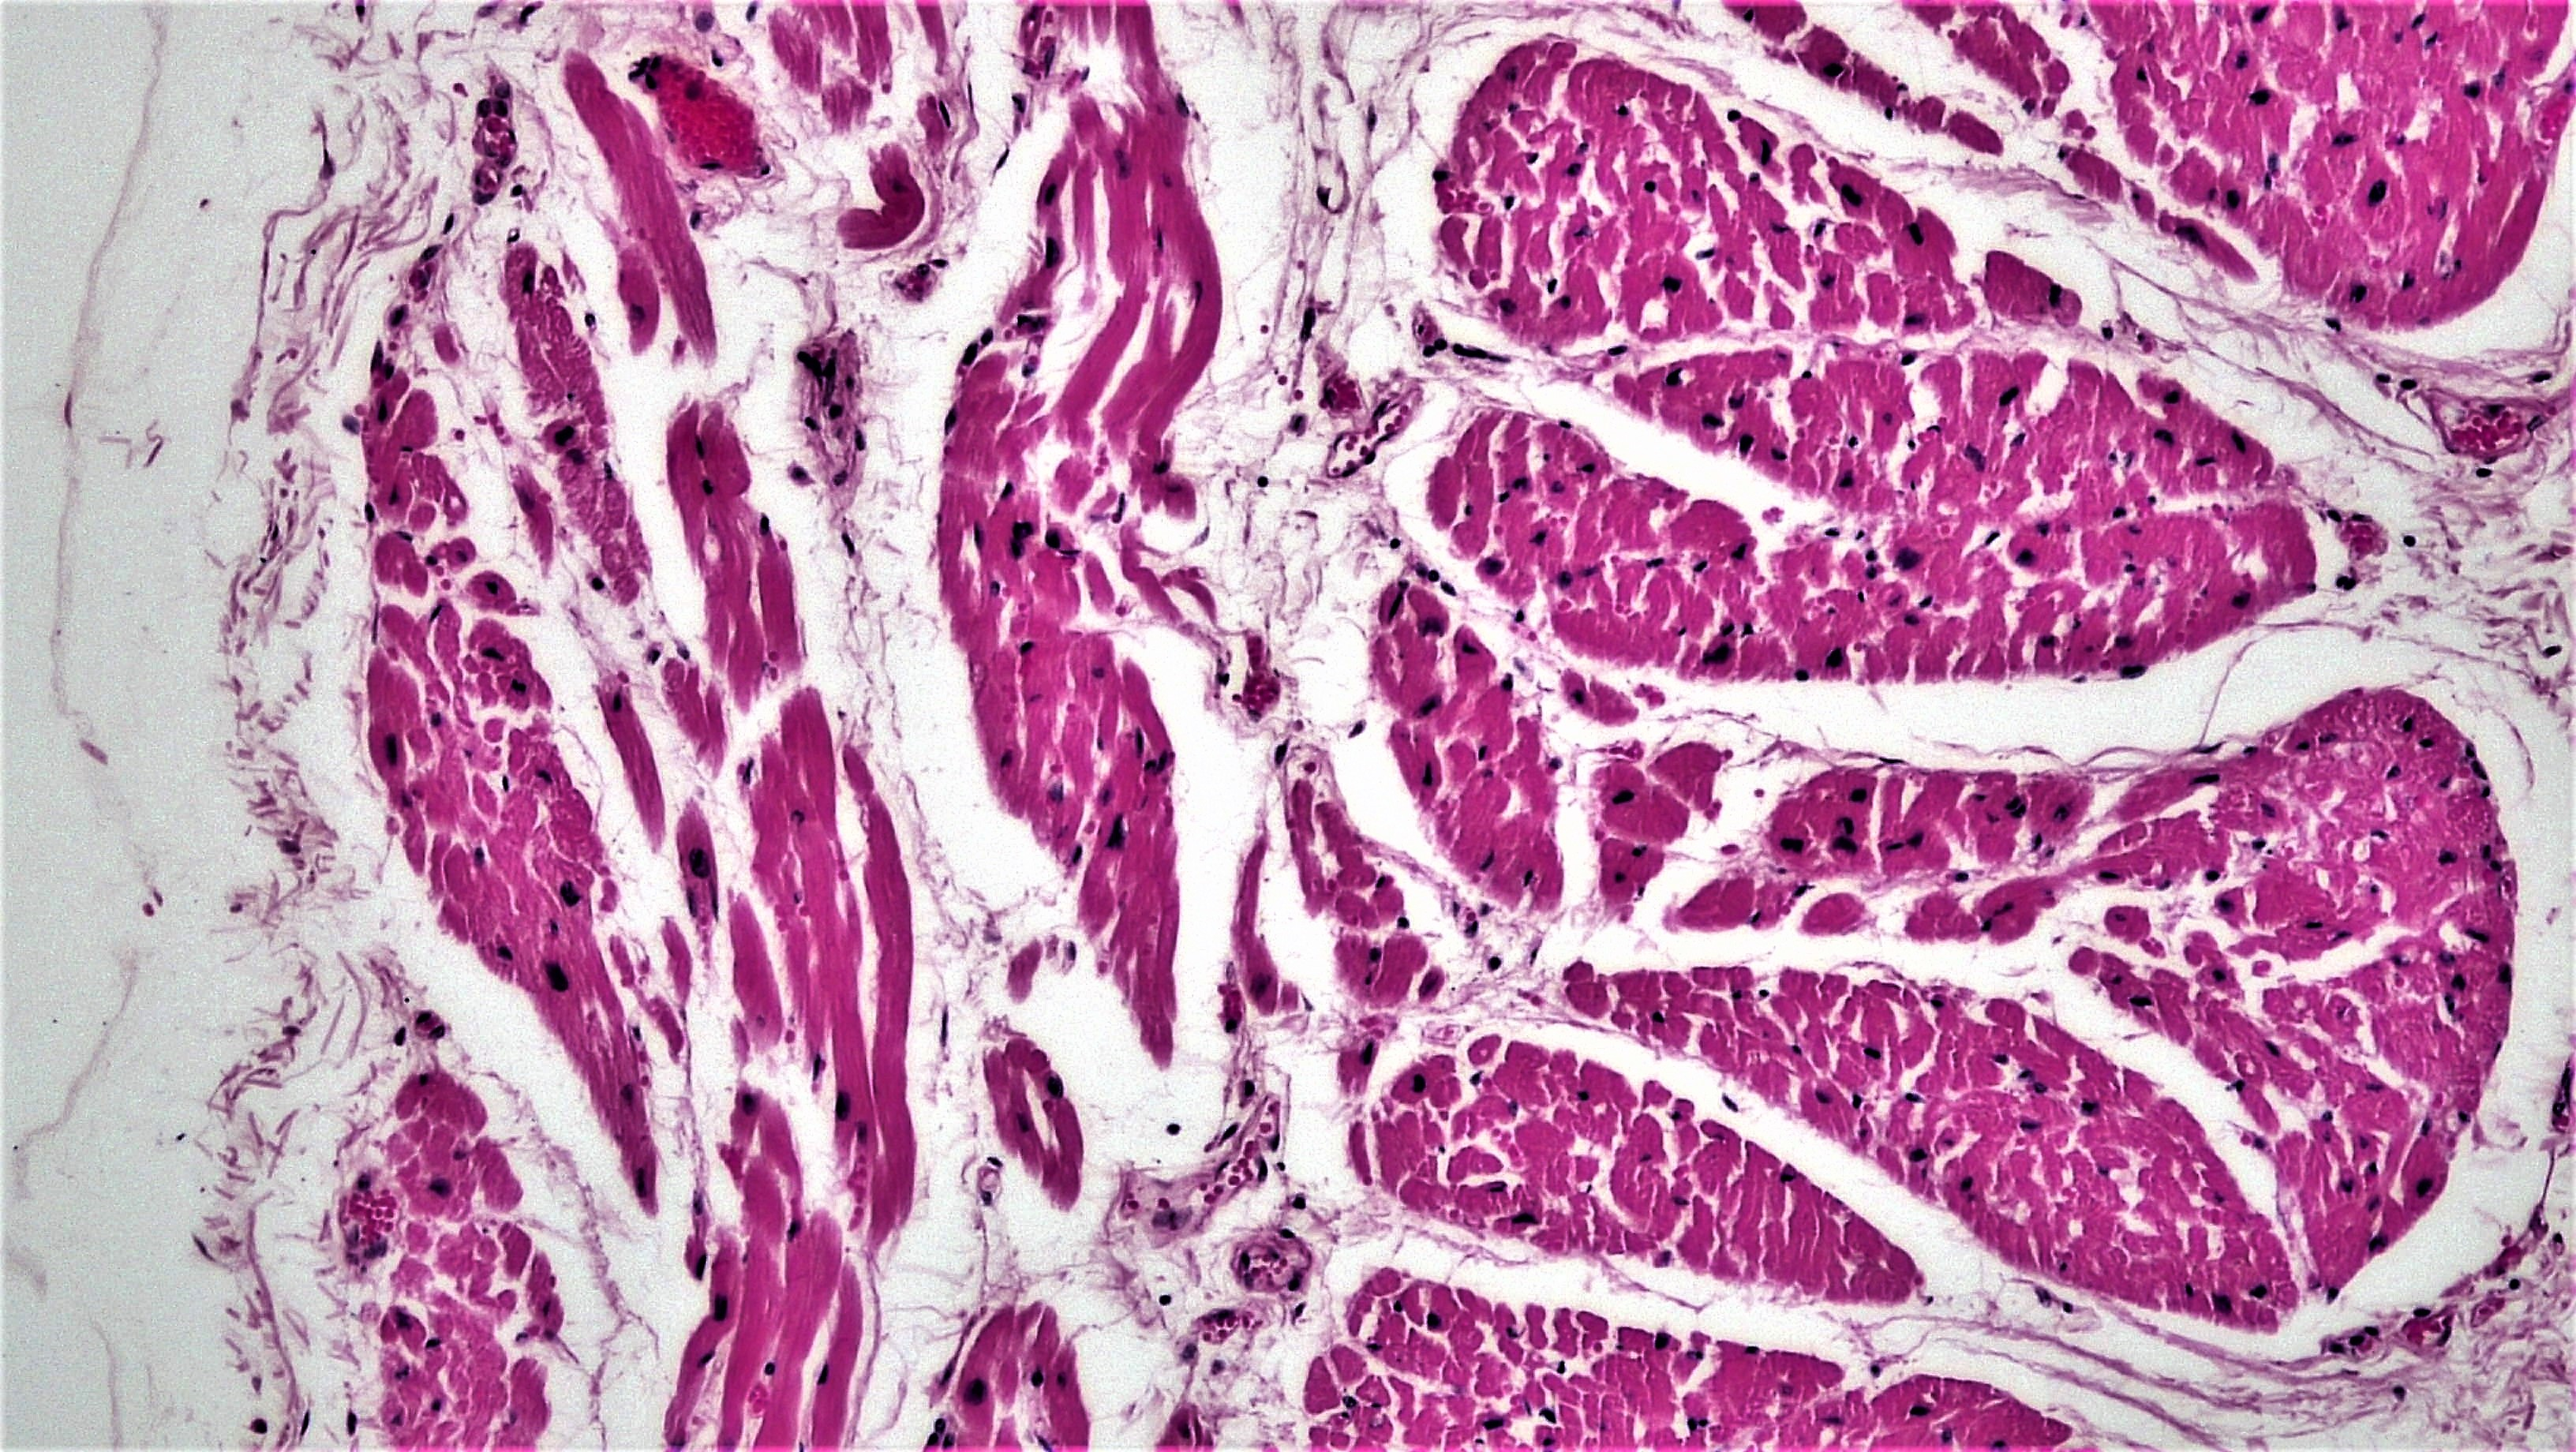 Muscles and nervous tissues